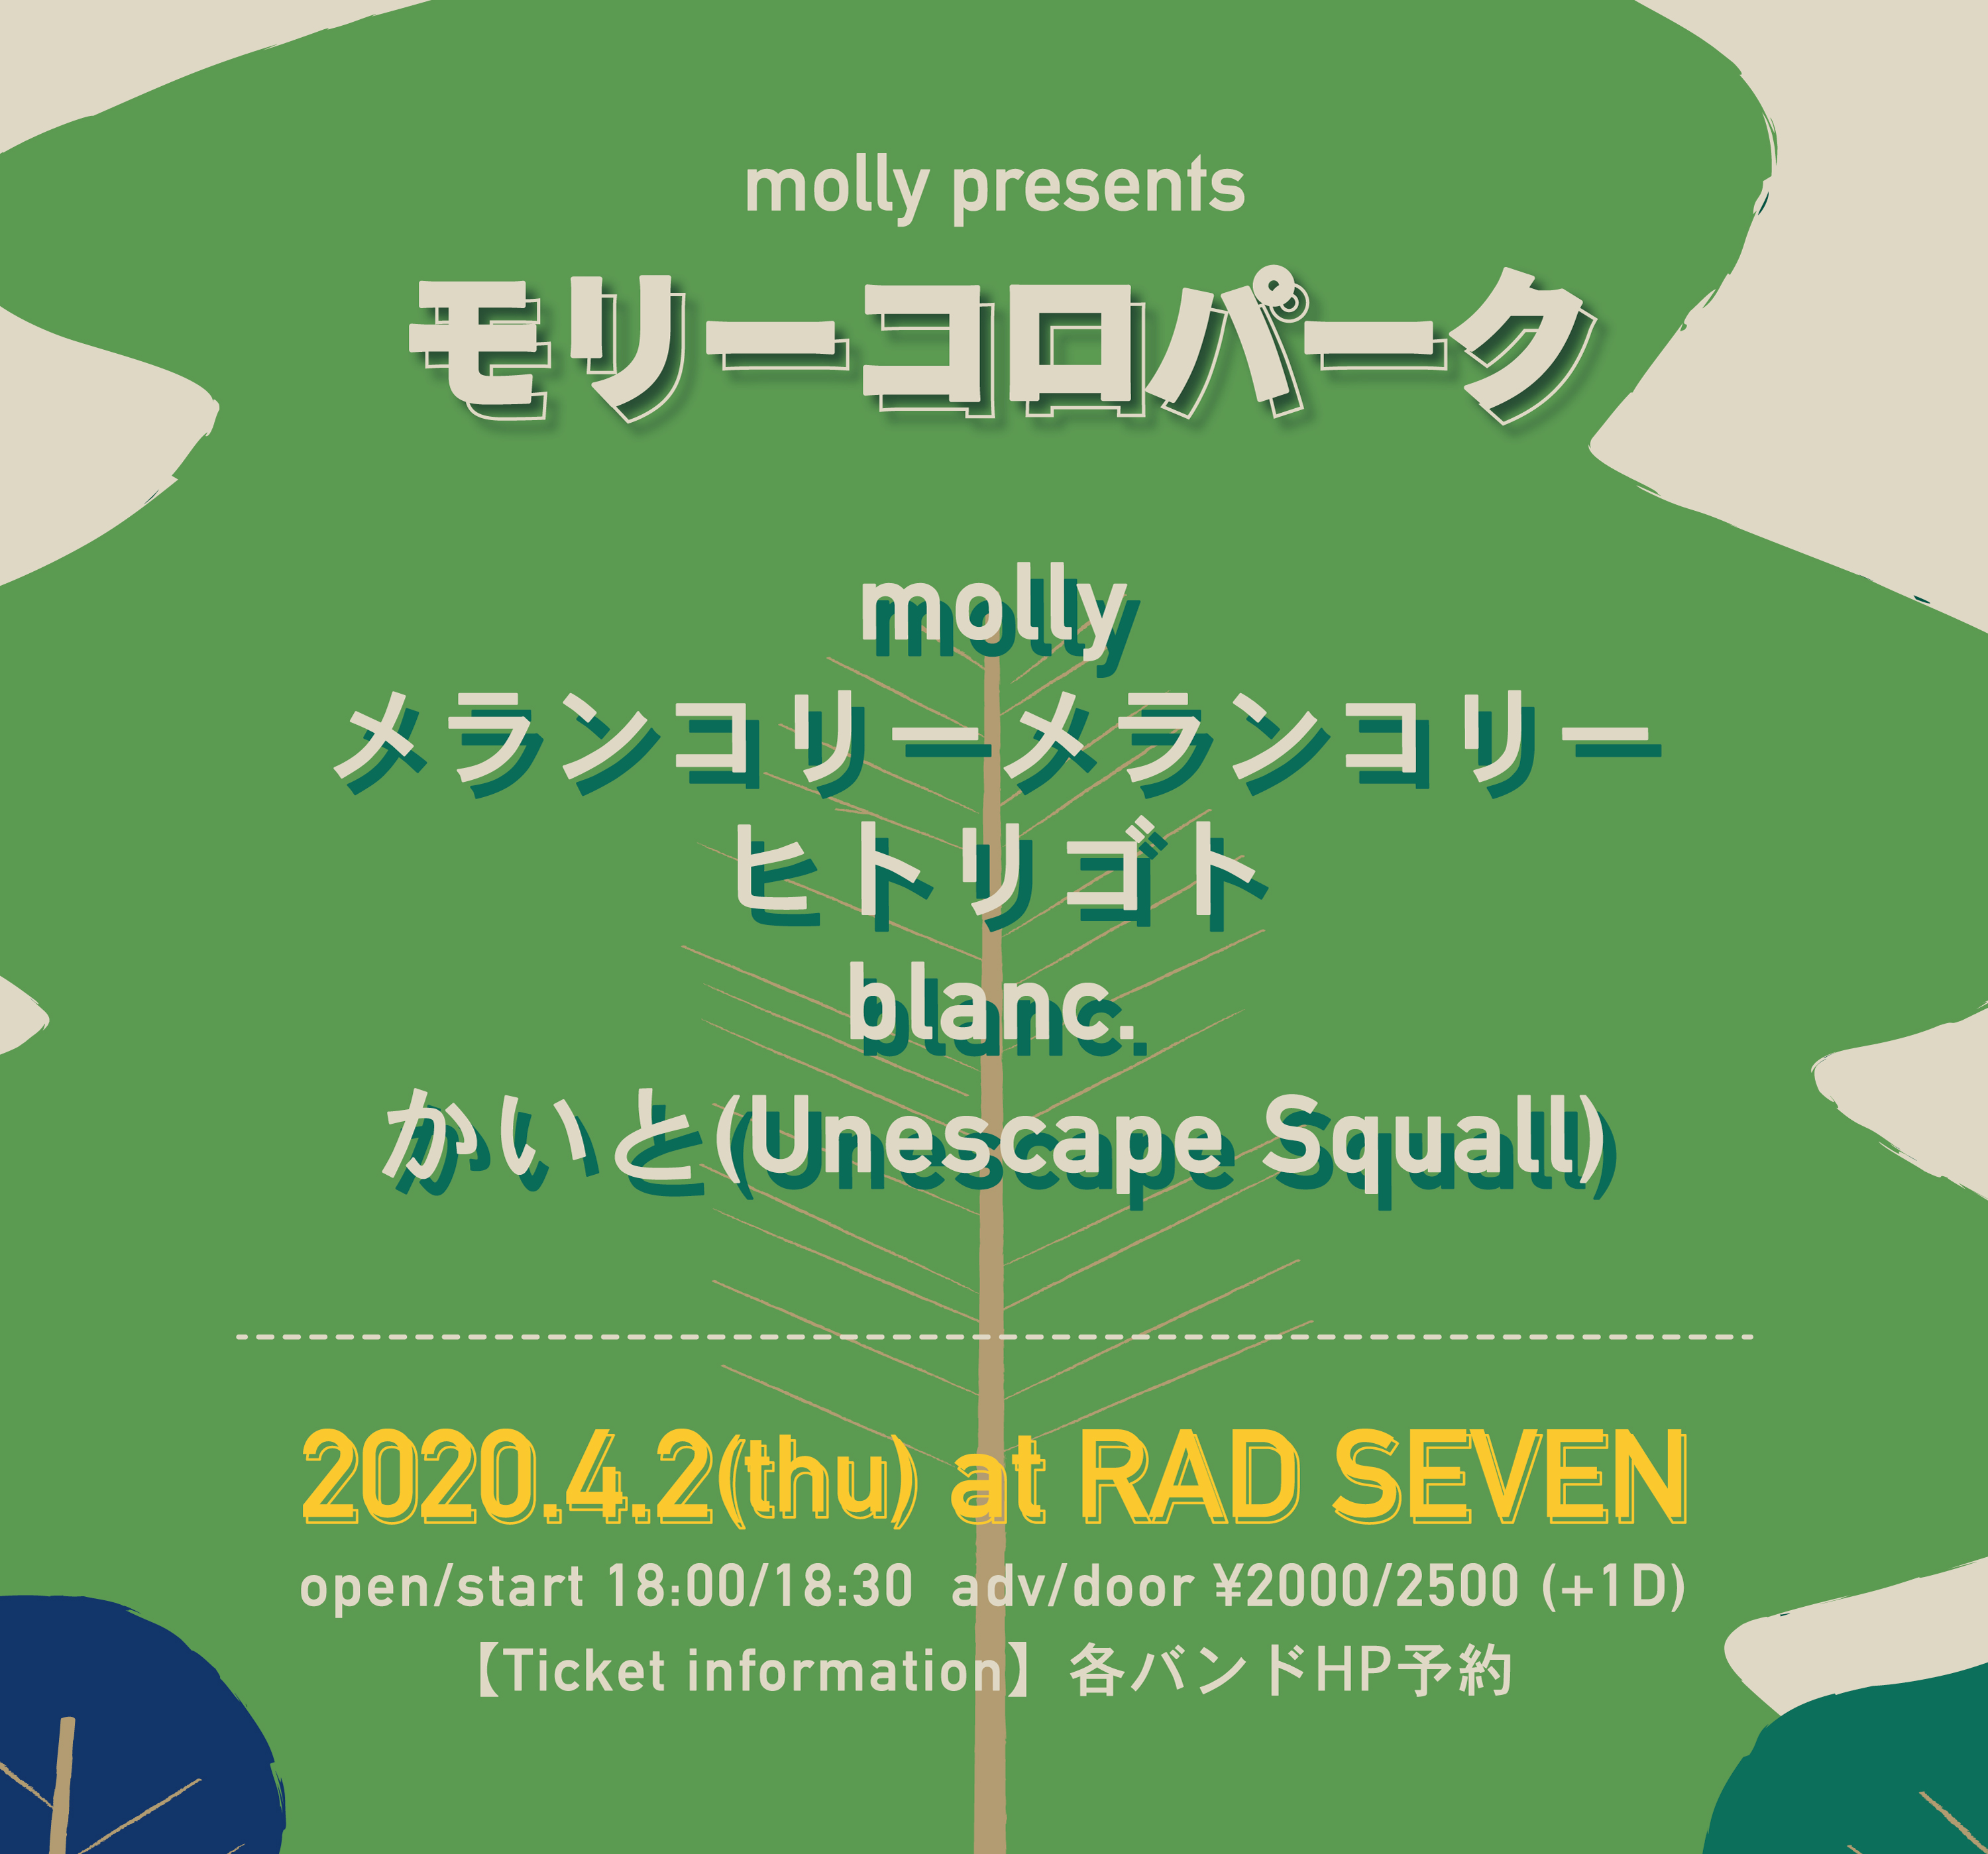 molly presents モリーコロパーク